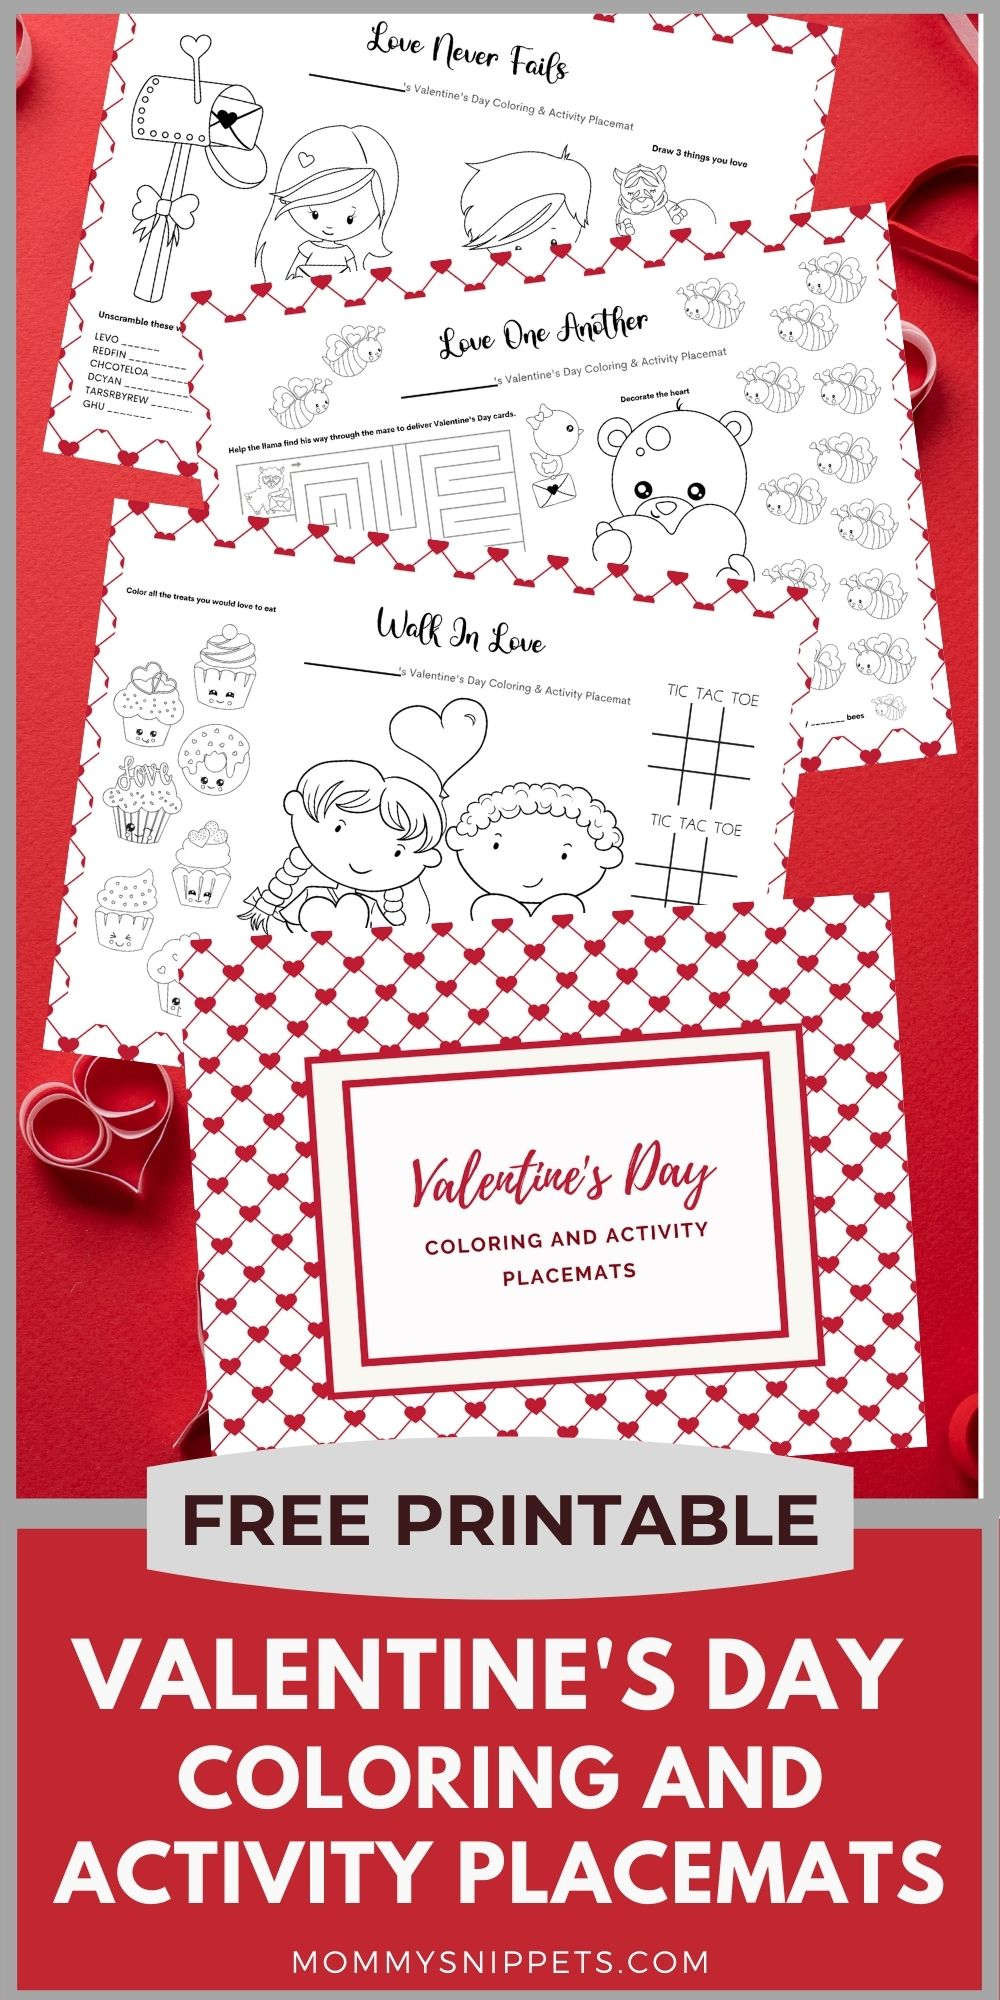 Valentine's Day Activity and Coloring Placemats- Mommy Snippets